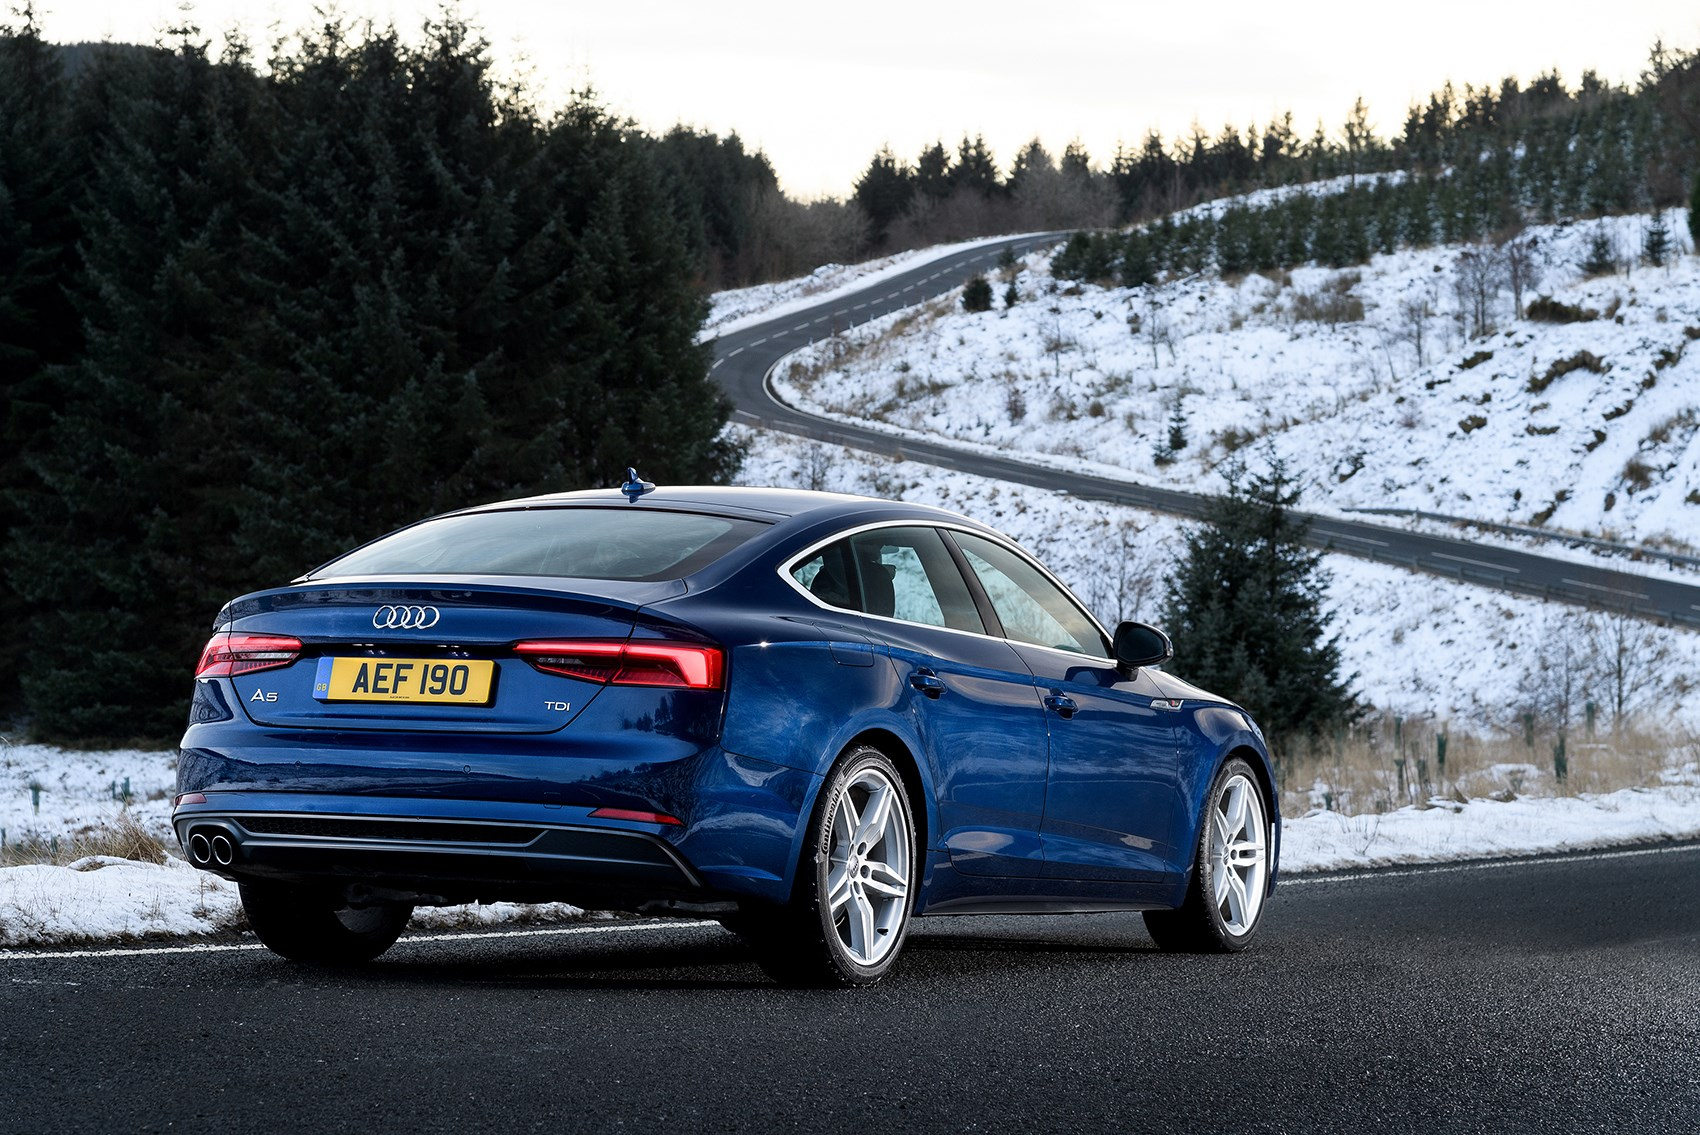 Audi A5 Sportback Review Summary Parkers